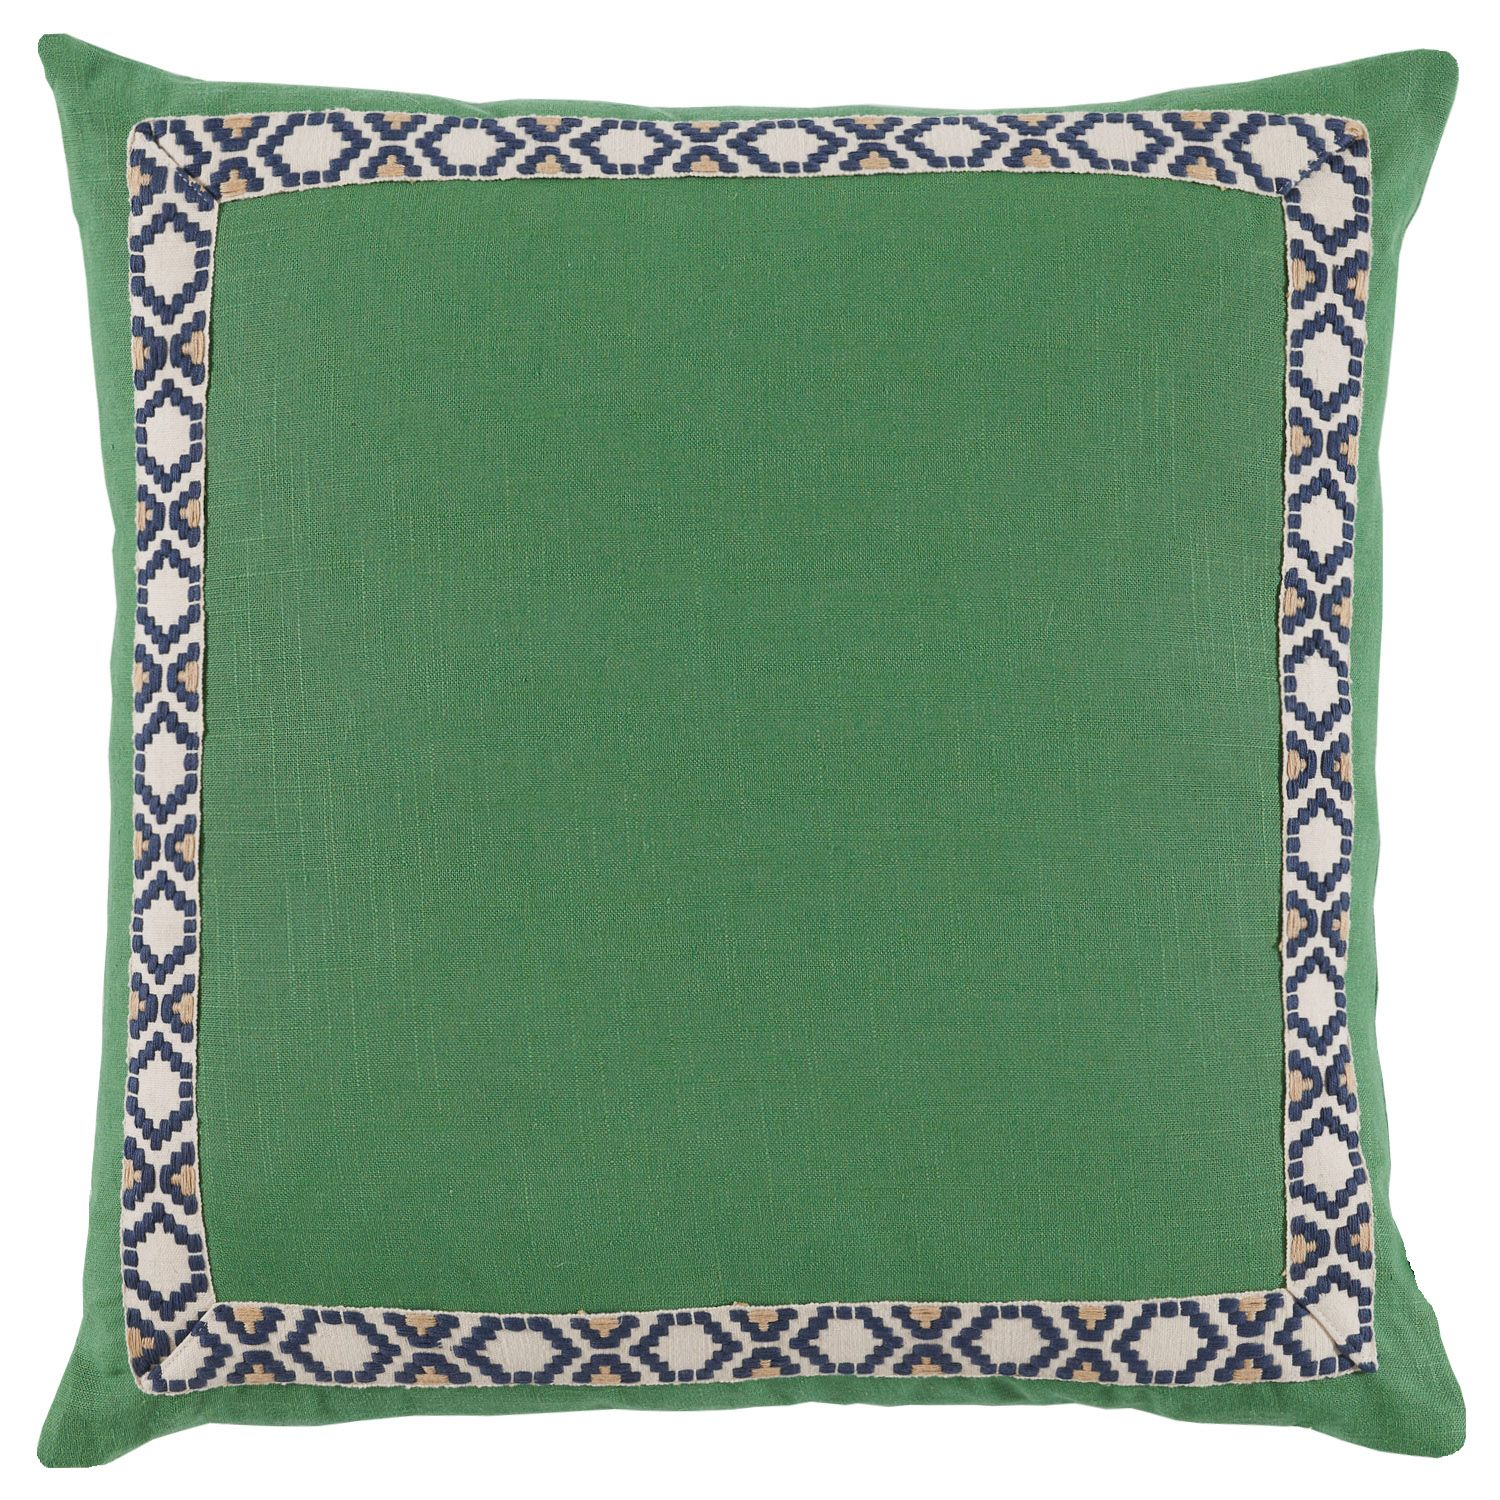 Lacefields Camden Throw Pillow Lends Simple Sophistication With A Touch